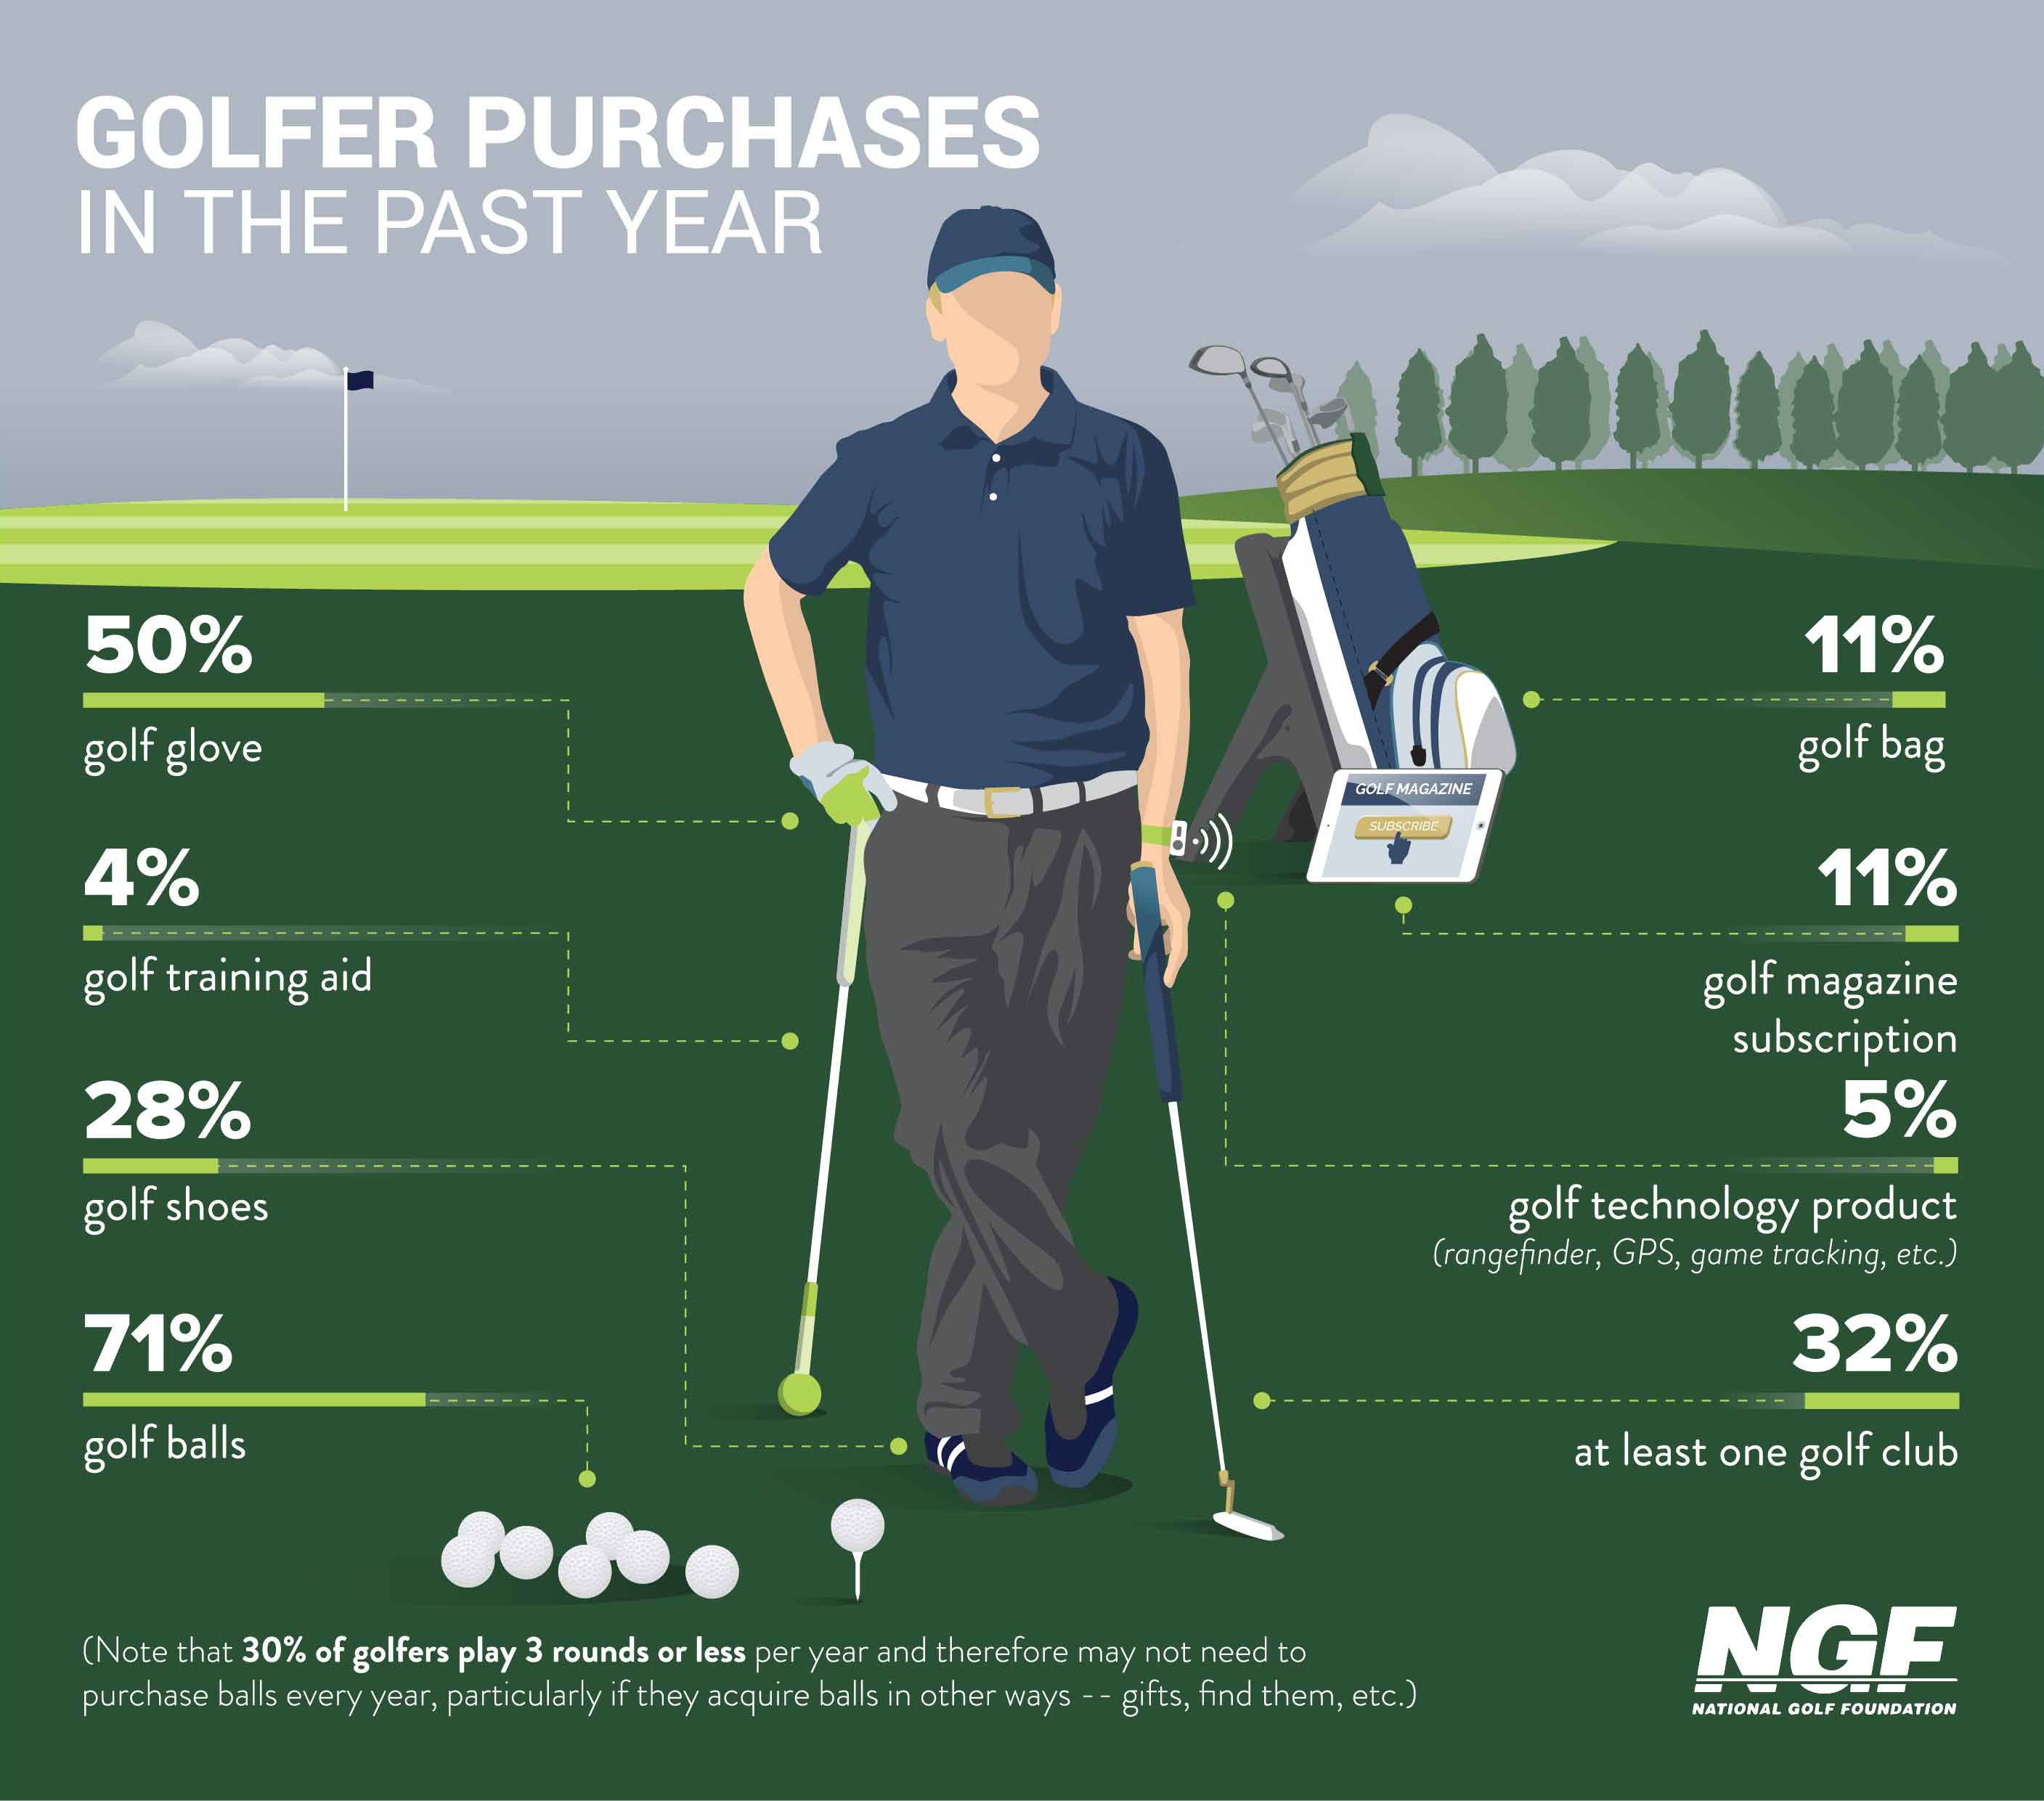 Golf industry health and vitality - equipment/accessory purchases